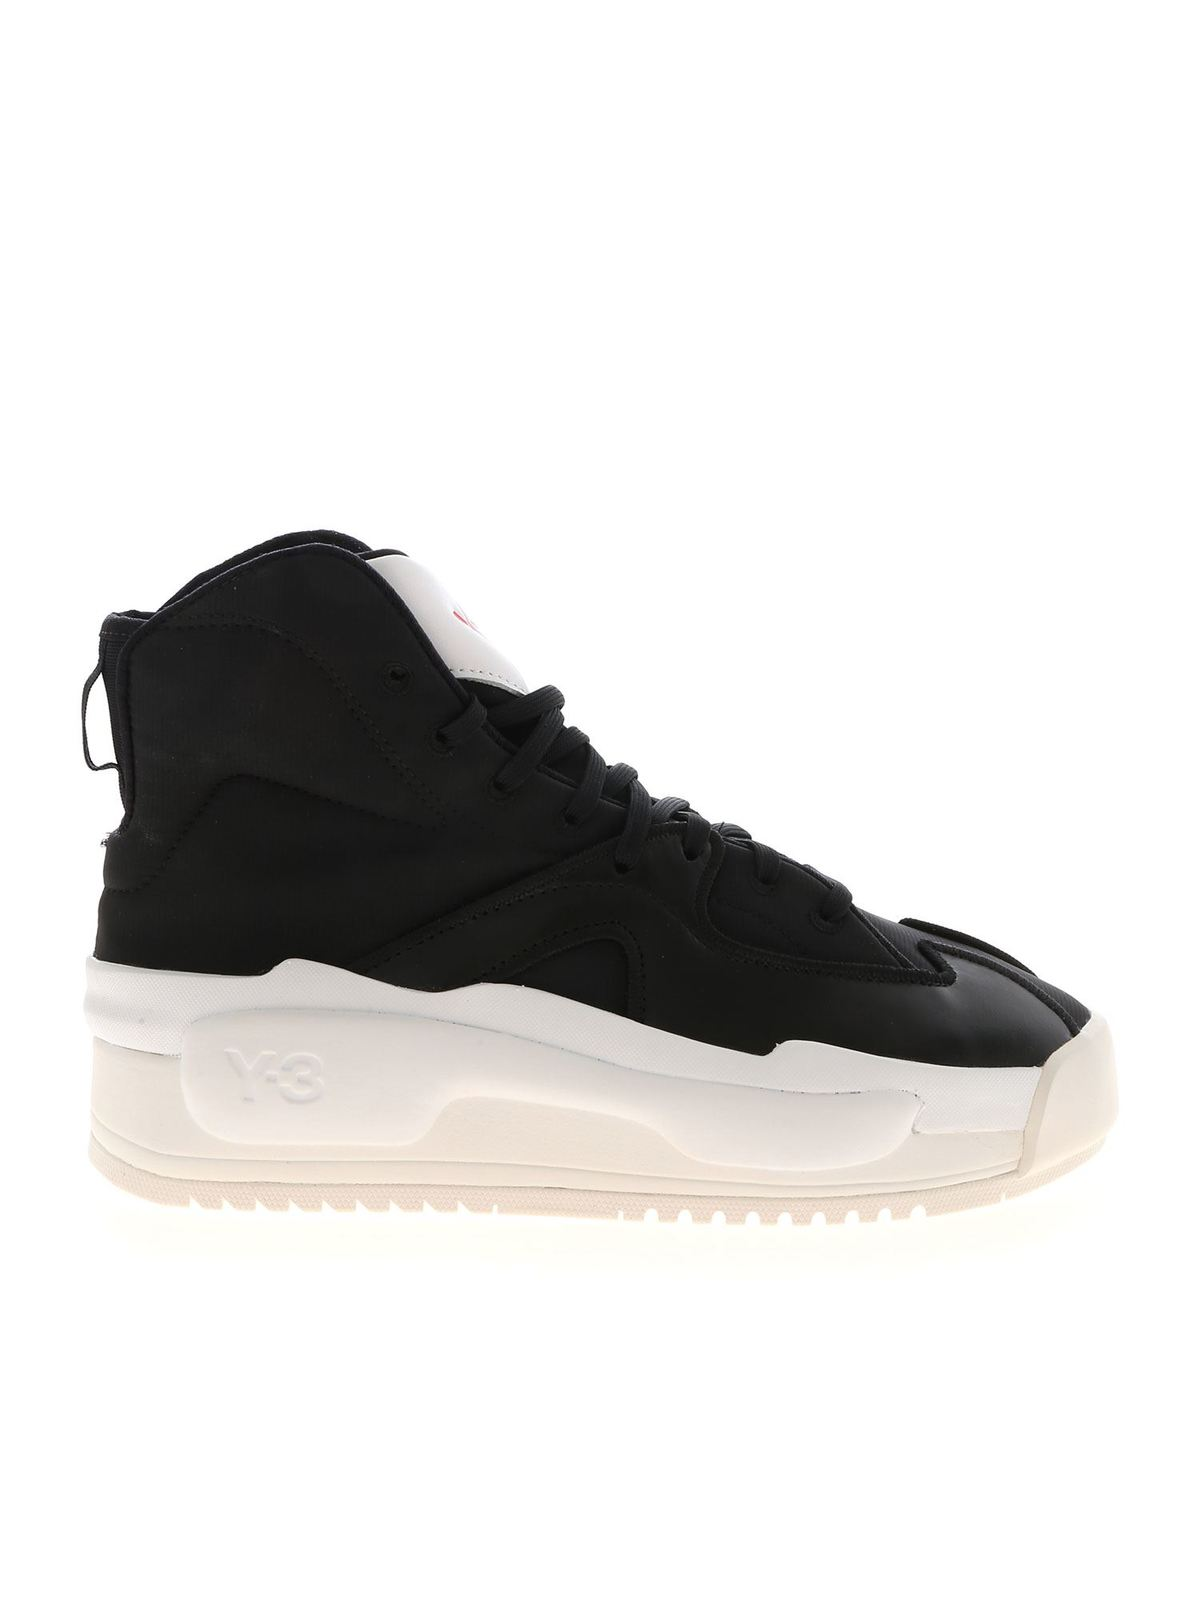 Y-3 HOKORI SNEAKERS IN BLACK